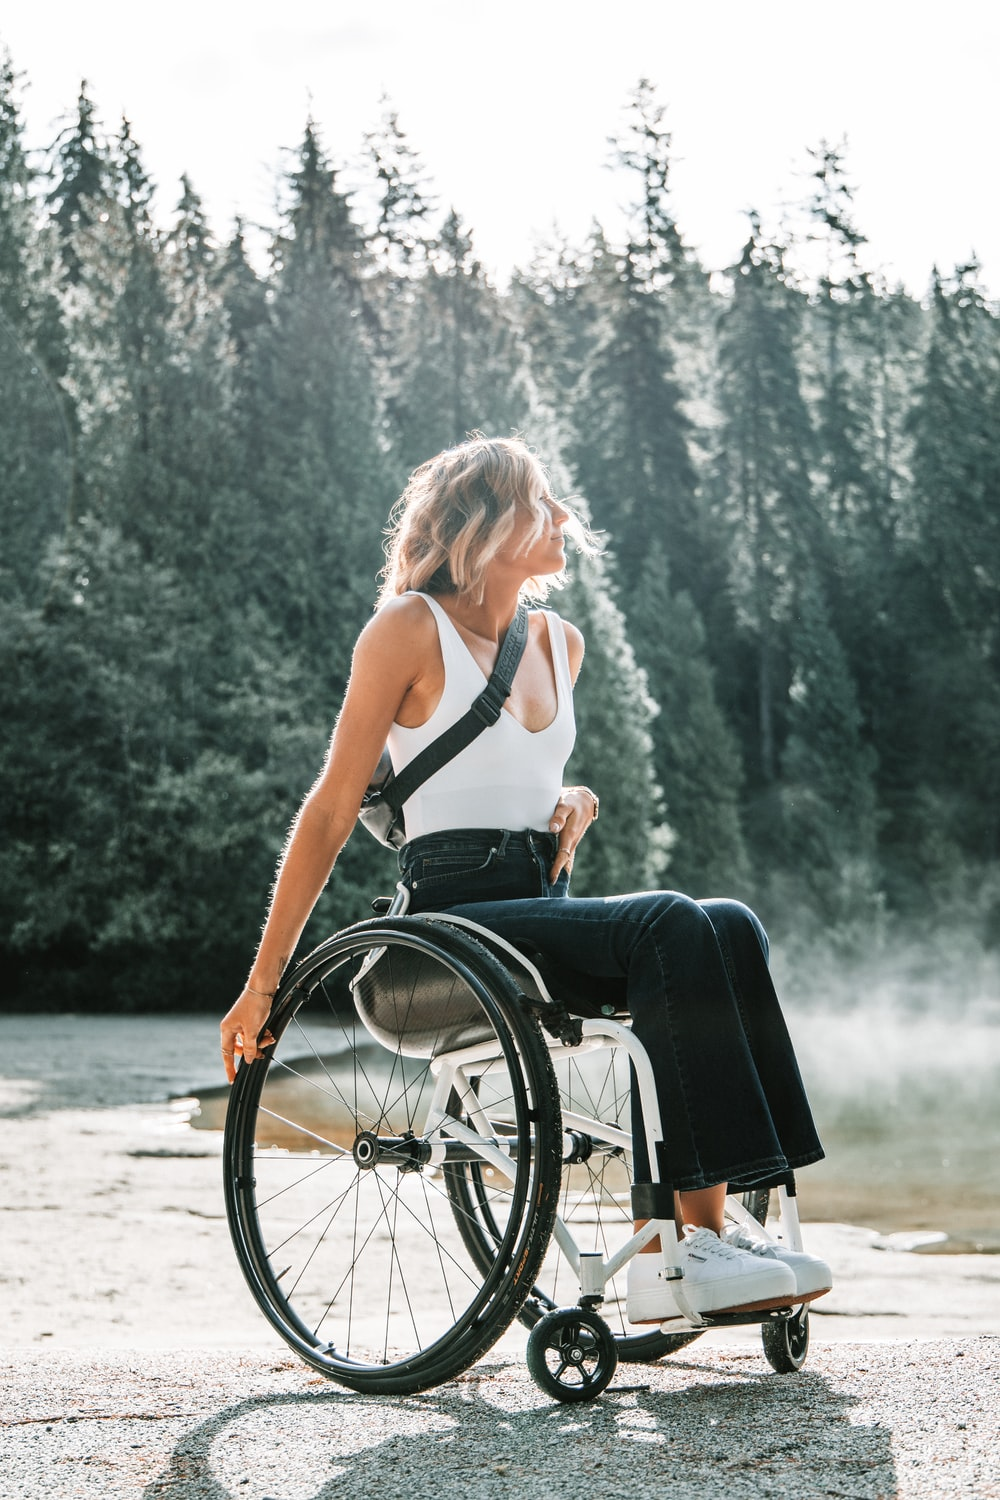 woman riding wheelchair near trees